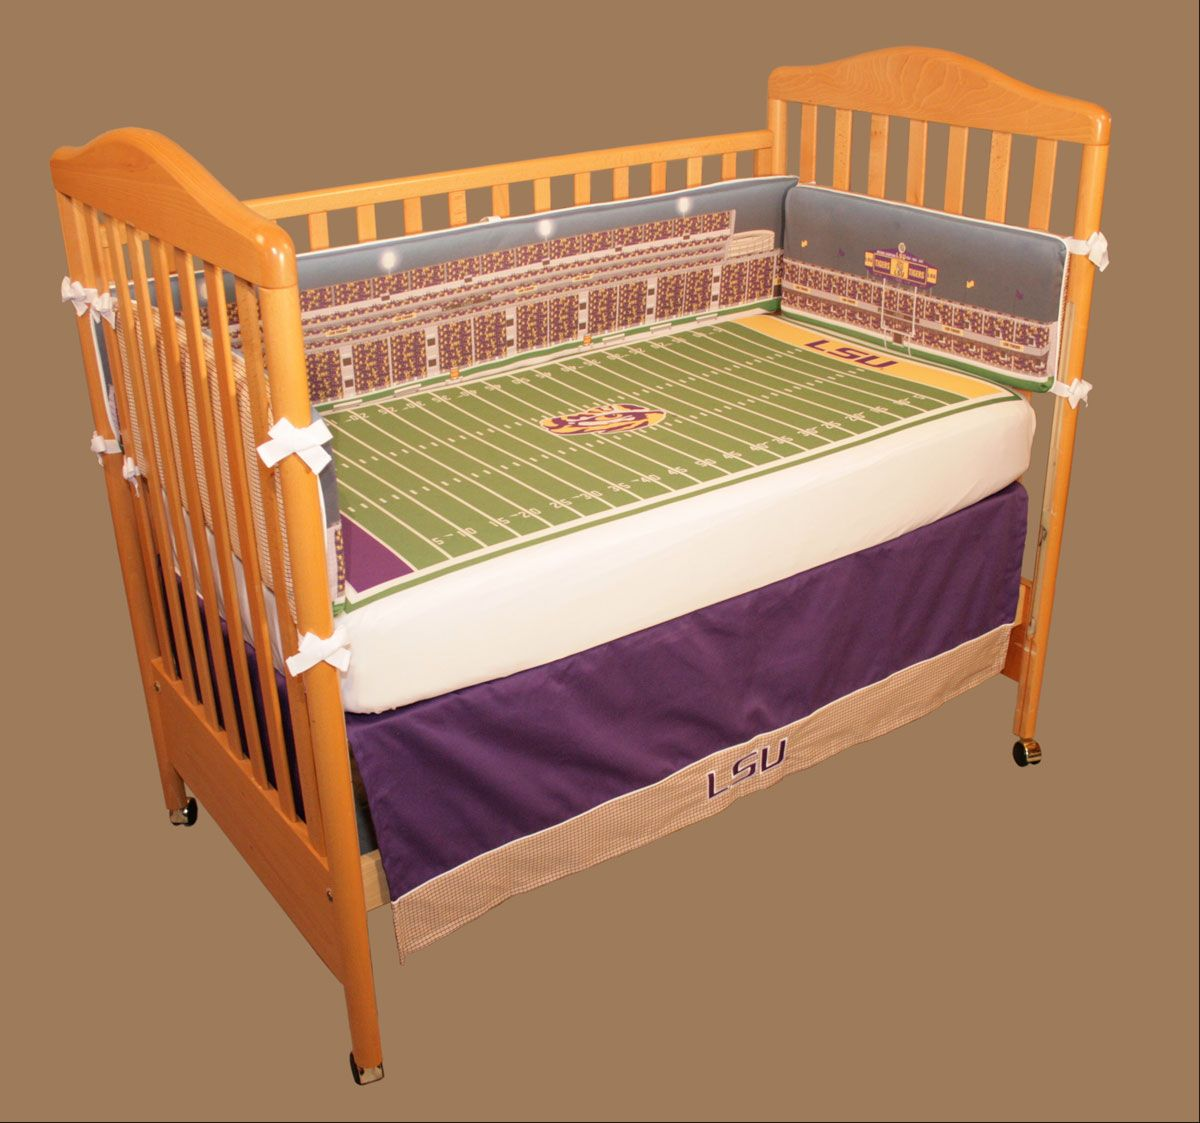 Lsu Sheets For Toddler Bed